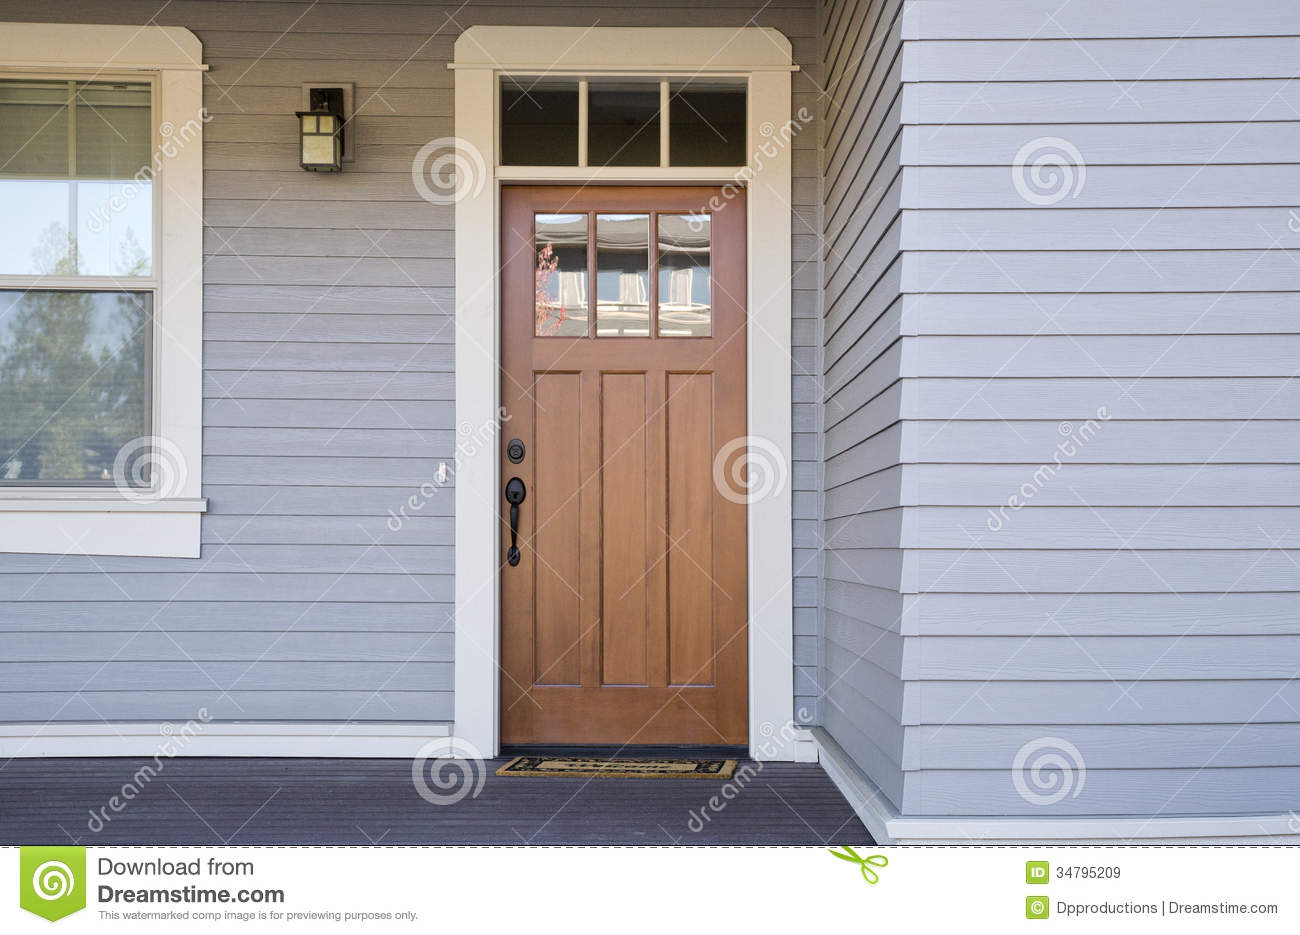 Wooden front door of a home stock image image of front for Door models for house